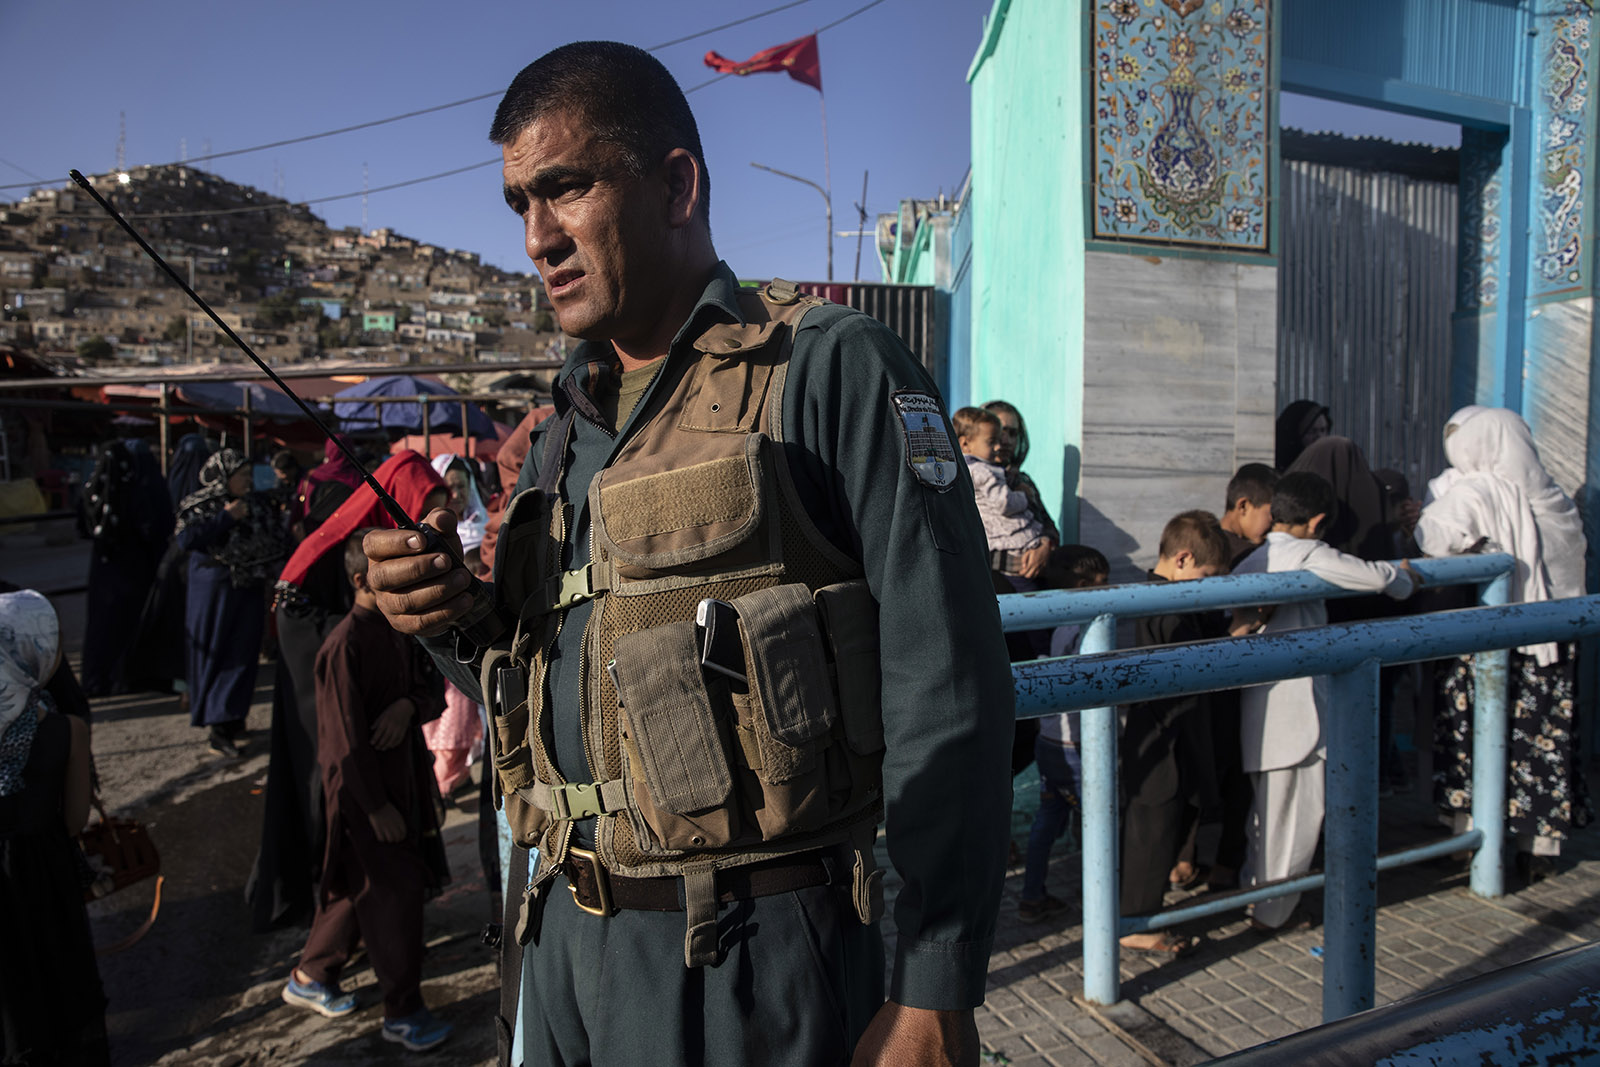 An Afghan security officer on duty outside the Karte Sakhi mosque in Kabul, Afghanistan, September 20, 2019